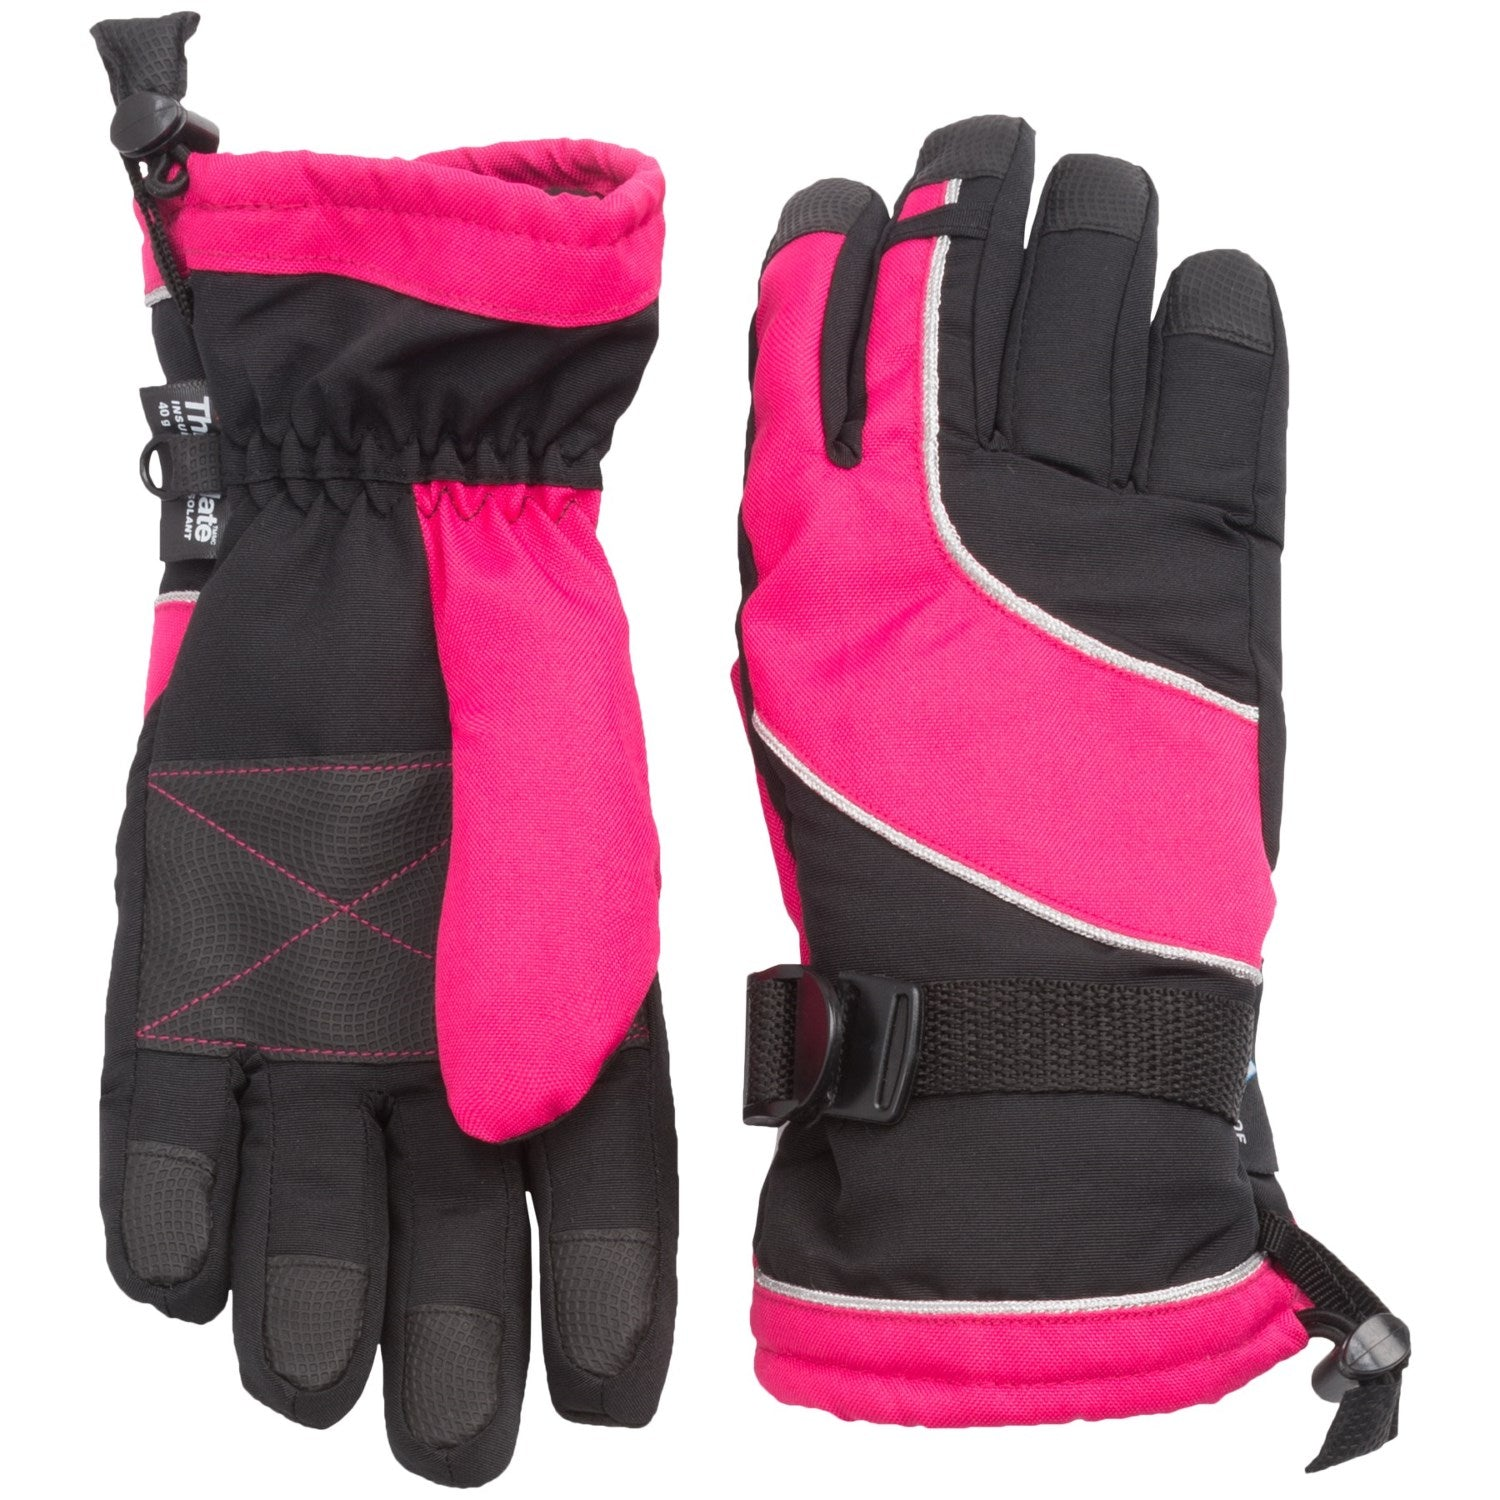 Grand Sierra Oxford Bec Tech Snowboard Gloves Waterproof, Insulated Black Pink Kid Youth O/S 7-16